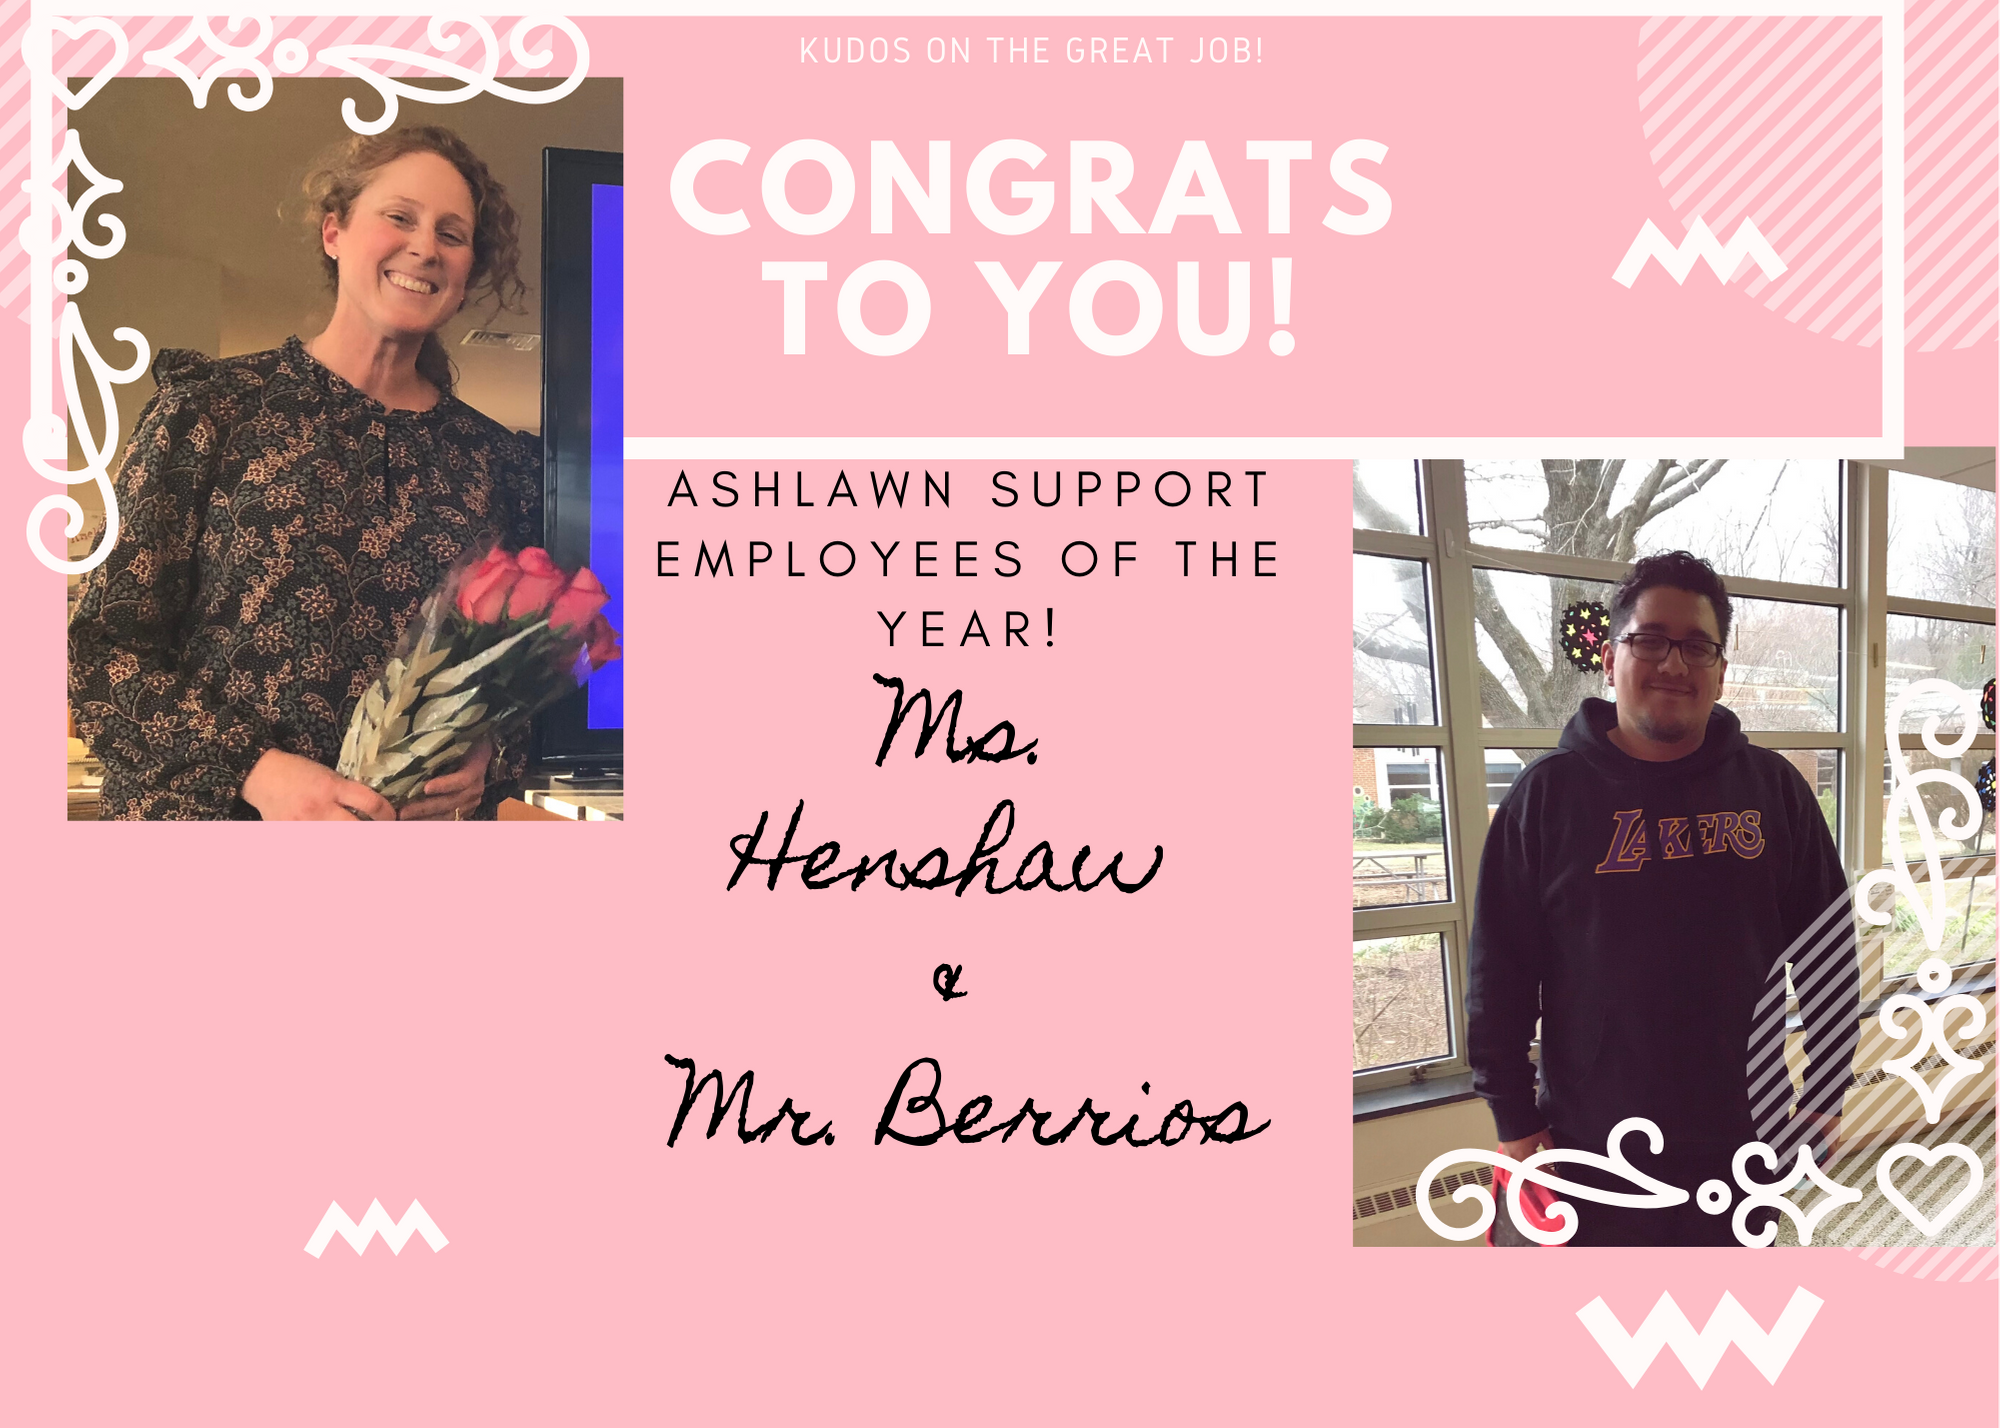 Ashlawn Support Employees of The Year